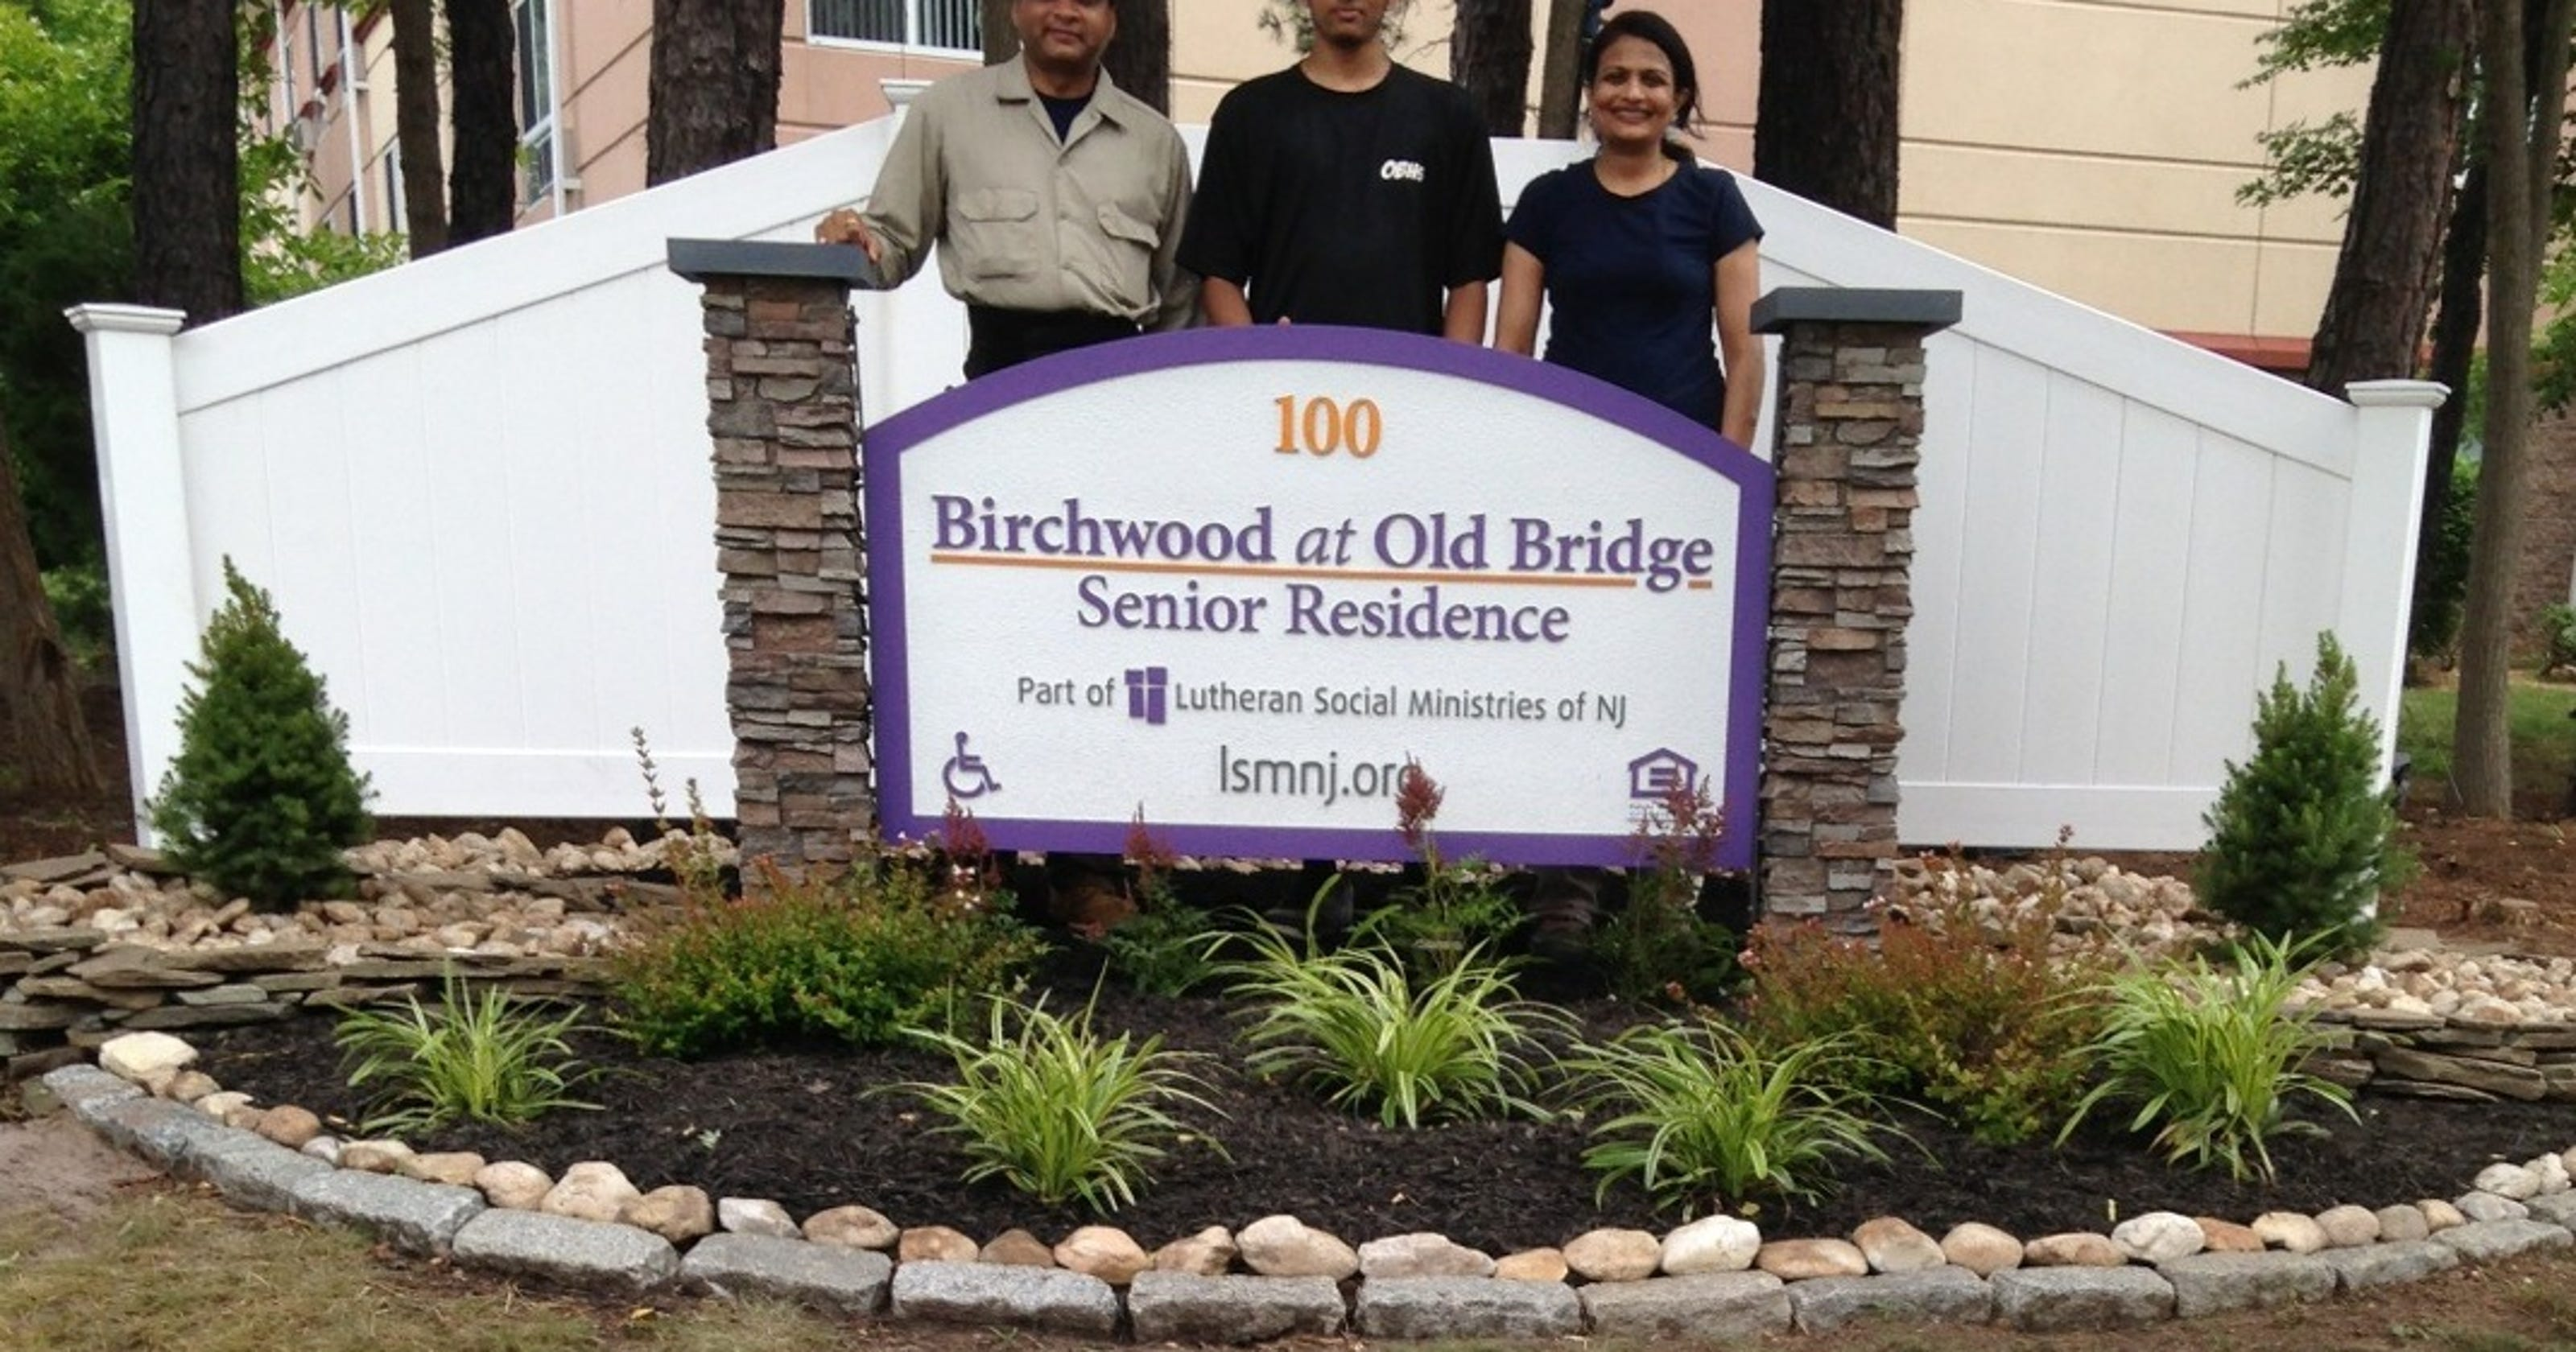 ca581d4290e07 Old Bridge Scouts spruce up landscaping at Birchwood at Old Bridge